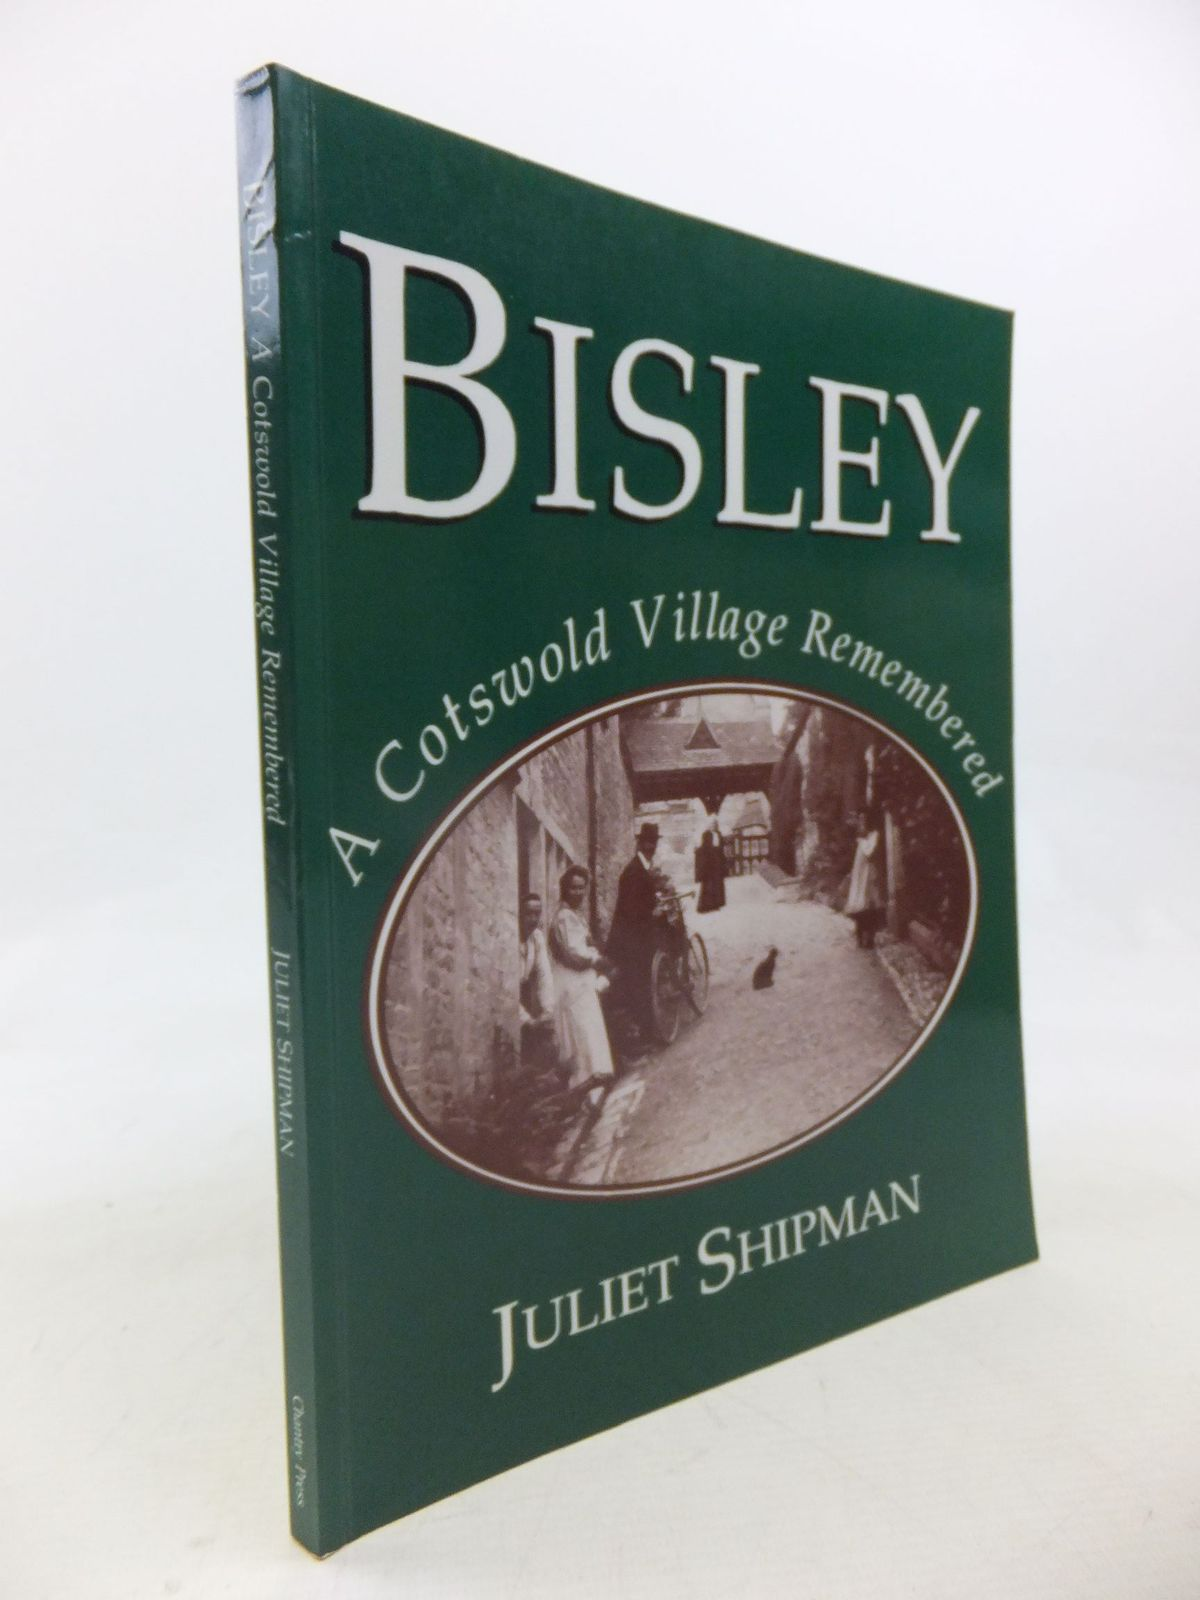 Photo of BISLEY A COTSWOLD VILLAGE REMEMBERED 1860-1945 written by Shipman, Juliet published by Chantry Press (STOCK CODE: 2116299)  for sale by Stella & Rose's Books